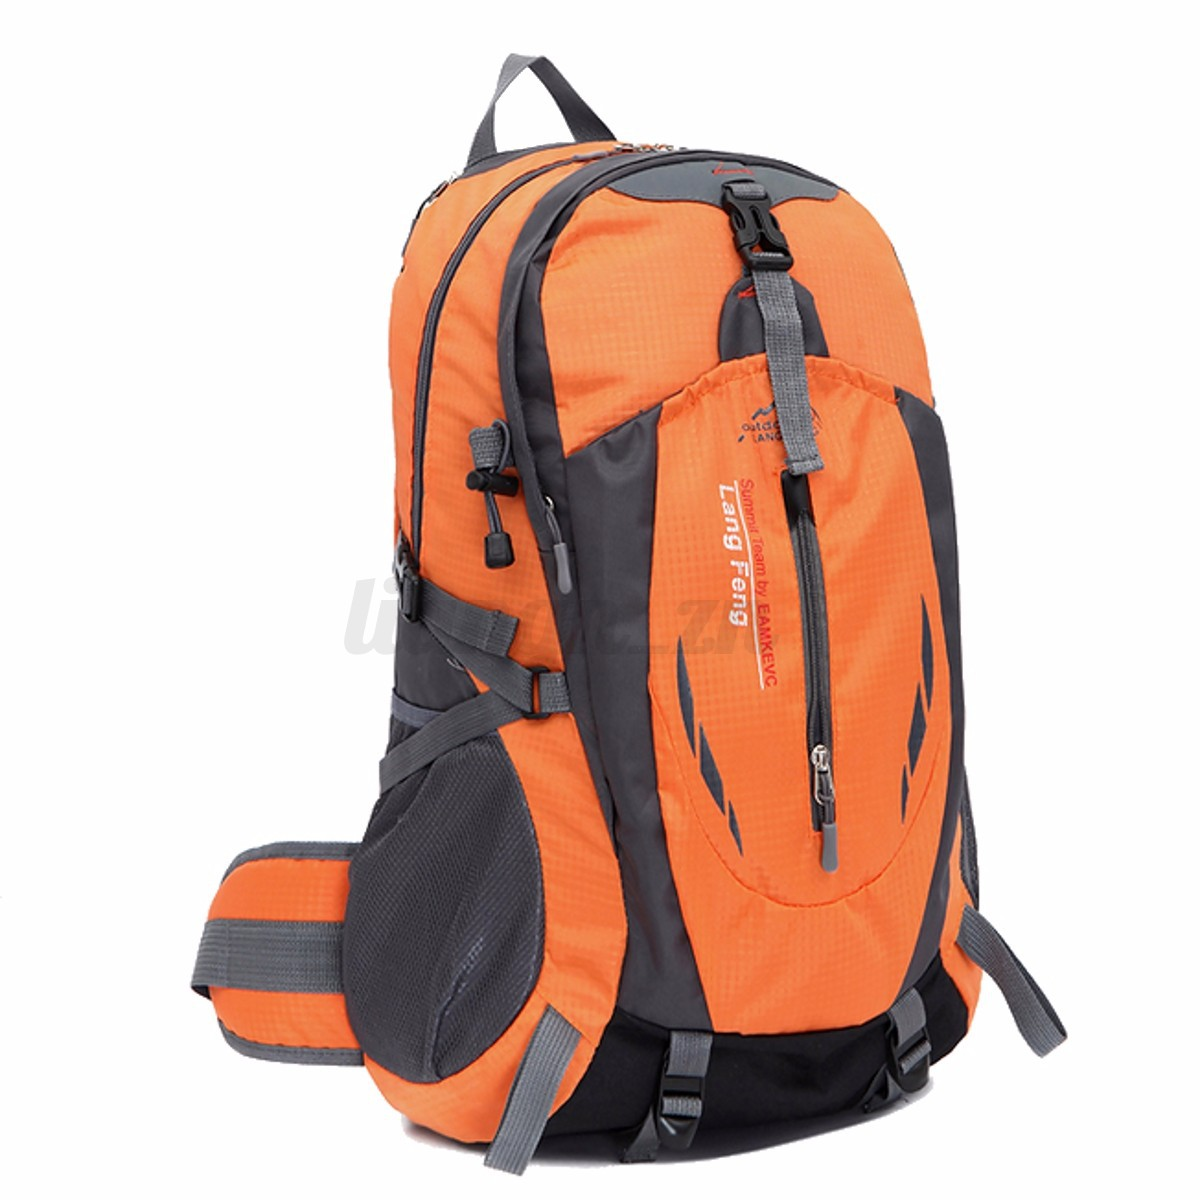 35l Rucksack Au Waterproof Hiking Outdoor Backpack Athletic Sport